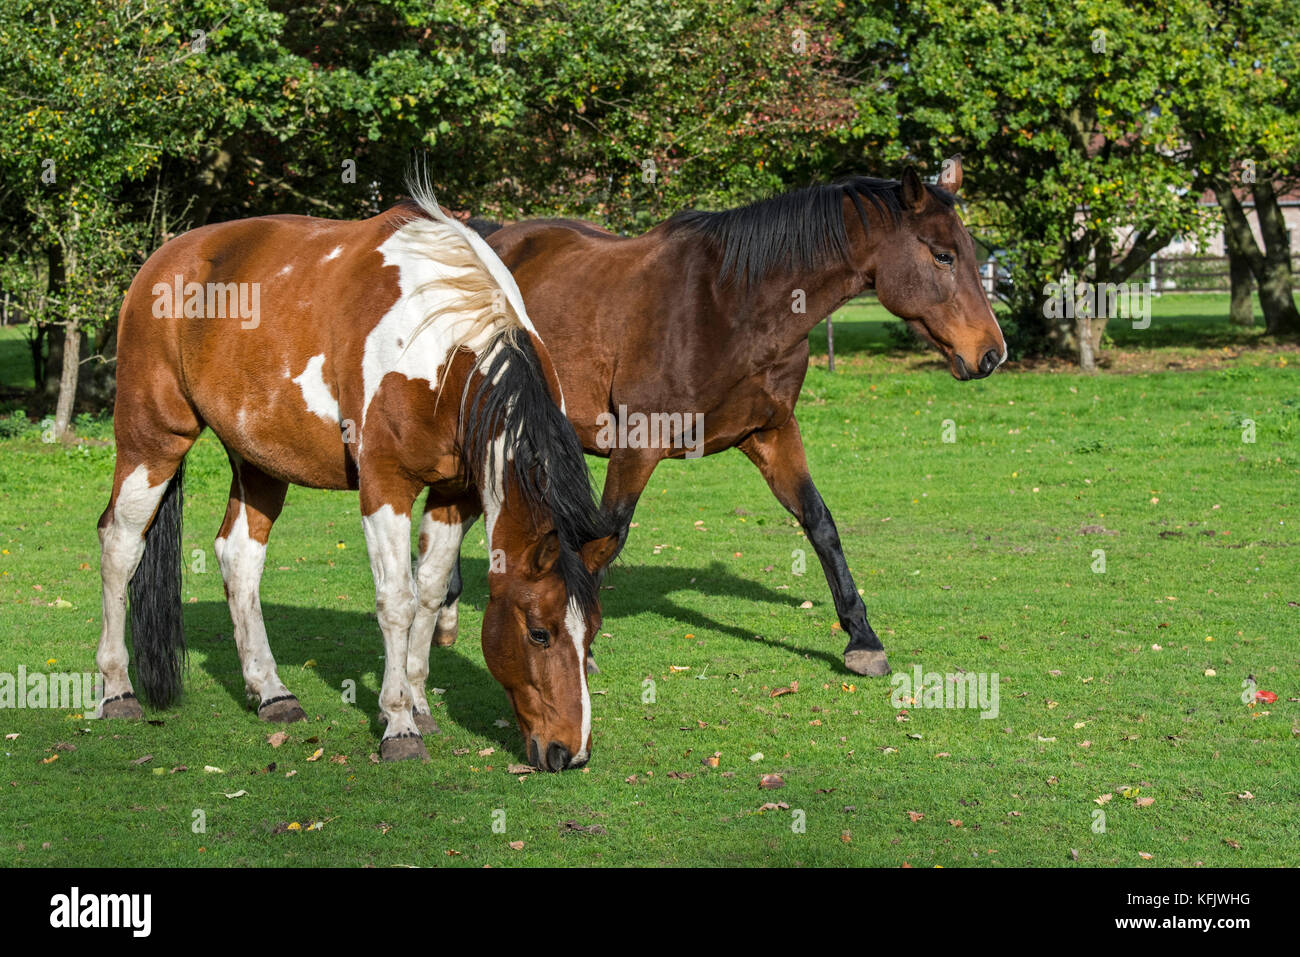 Pinto horse / Quarter Horse stallion and Belgian Warmblood mare outside in field - Stock Image